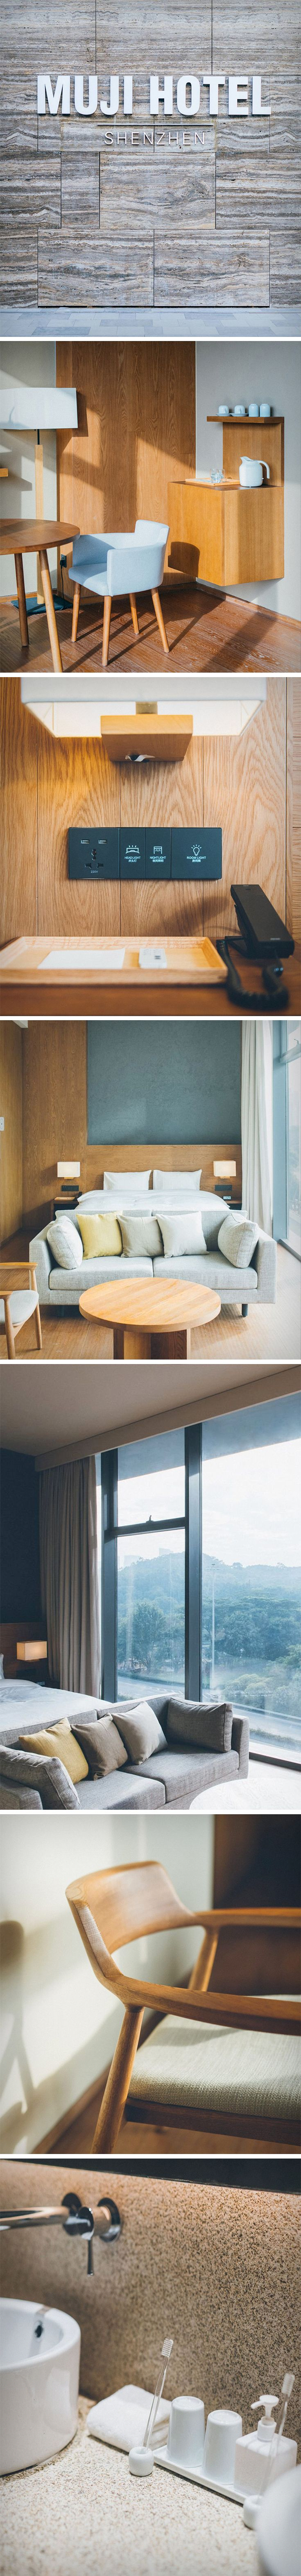 Opening their first hotel, MUJI has done what I've only ever dreamt of and filled an entire building with their gorgeously designed and manufactured products, and are allowing people to use them and live amongst them. Opening up early next year, the MUJI hotel will consist of 79 guest rooms and feature recycled woods, cloudy plastics (Polycarbonate) and many other materials that follow the brand's signature aesthetic of their furniture and accessories from their line.